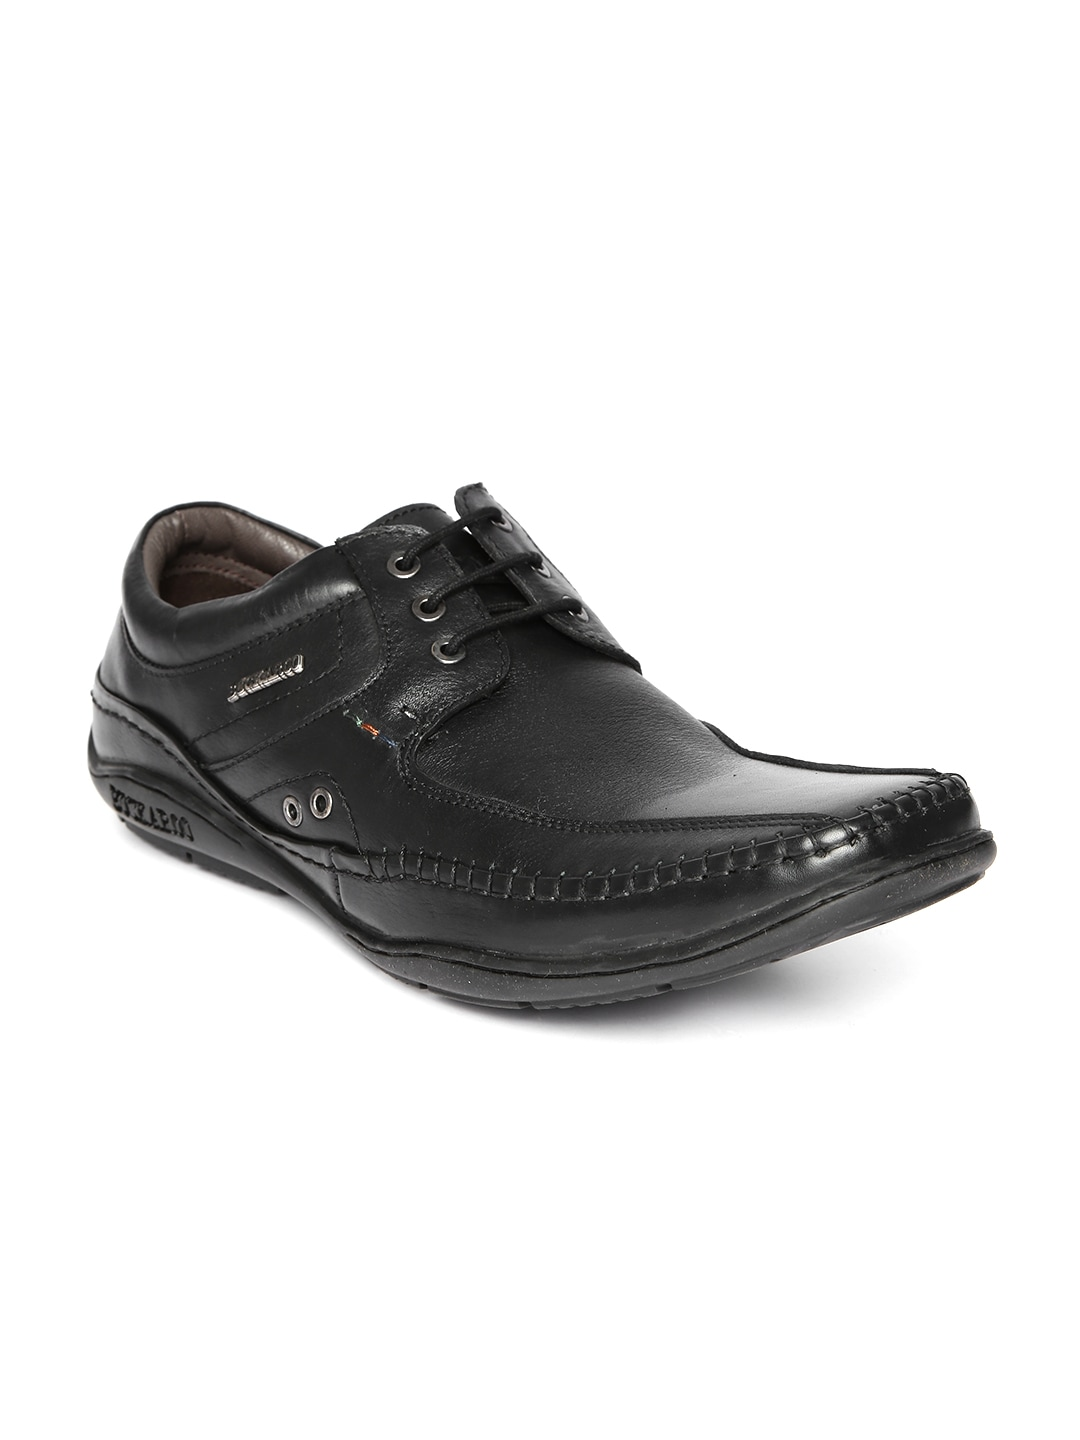 Buckaroo Men Black Leather Casual Shoes image